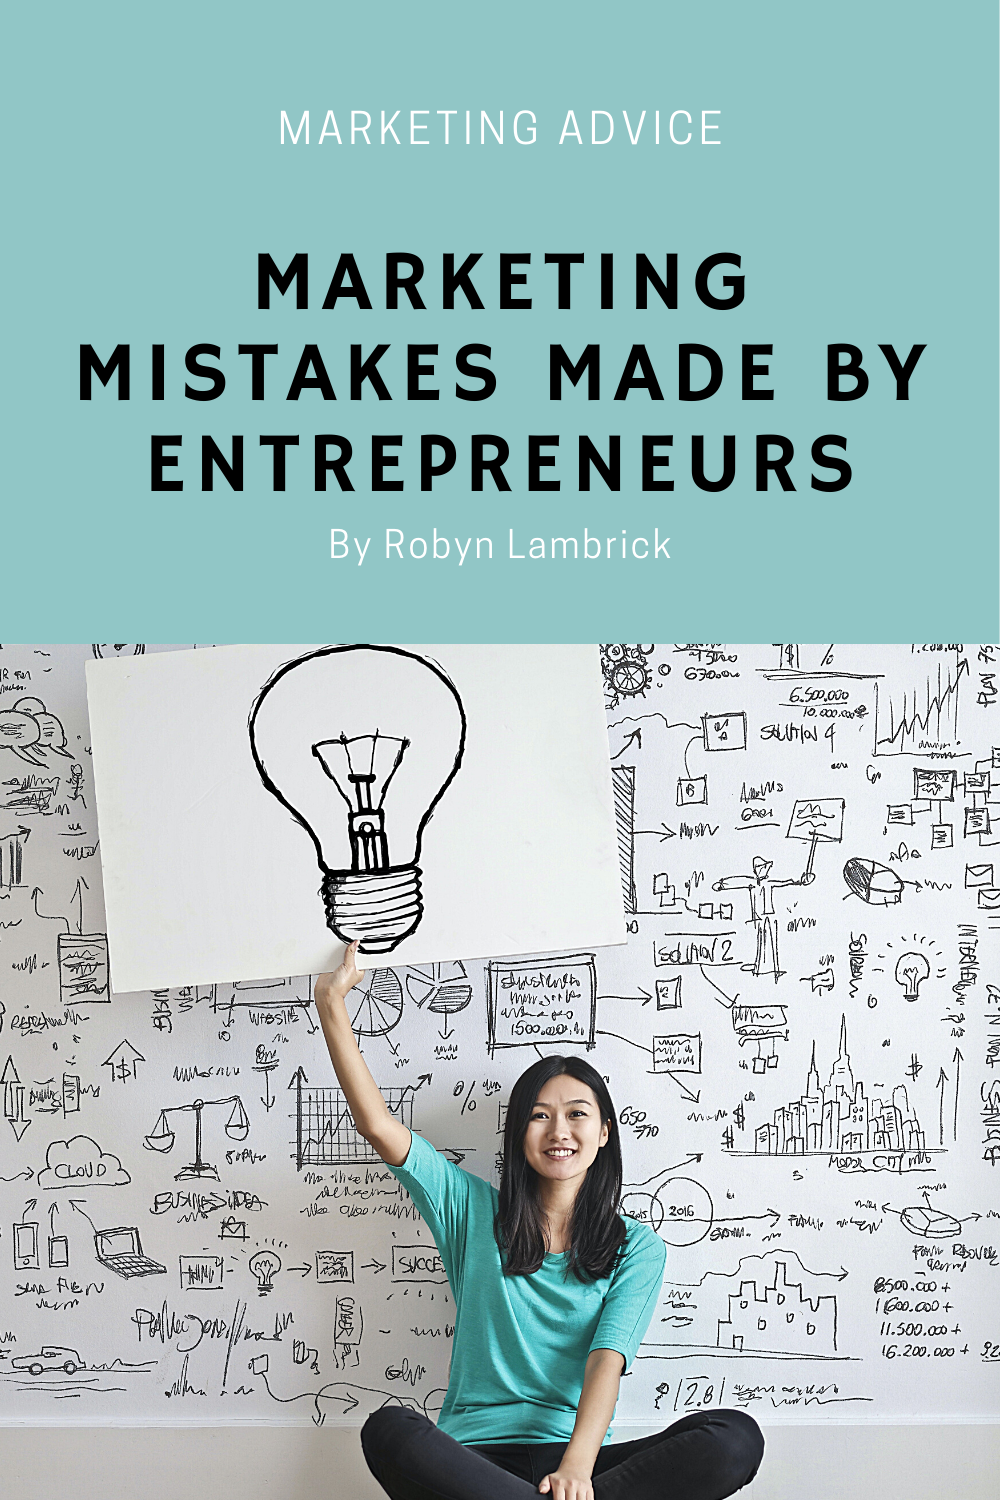 Marketing Mistakes Made By Entrepreneurs by Robyn Lambrick